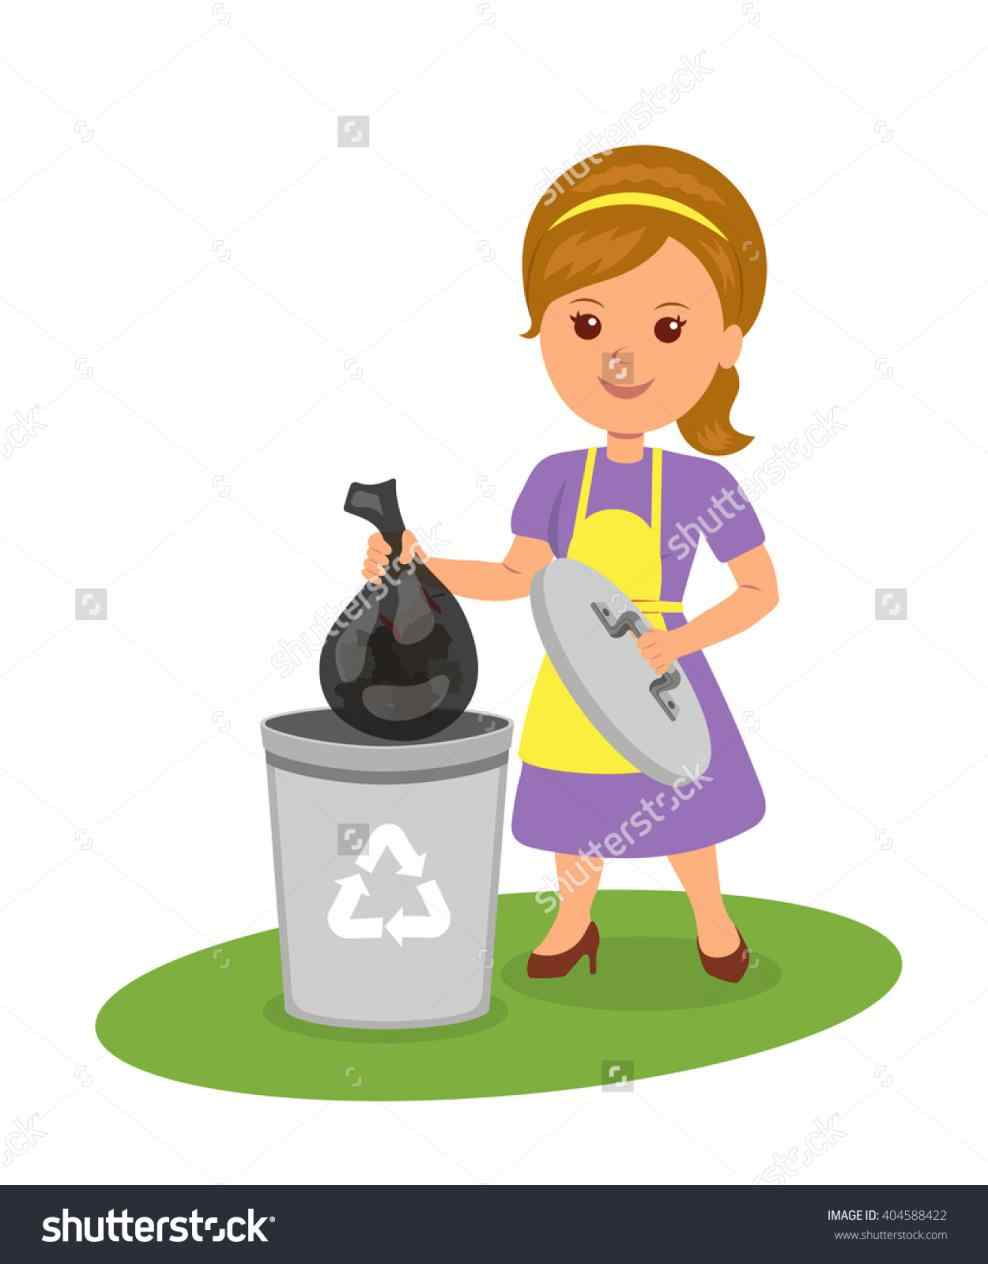 Take out the trash clipart 5 » Clipart Station.